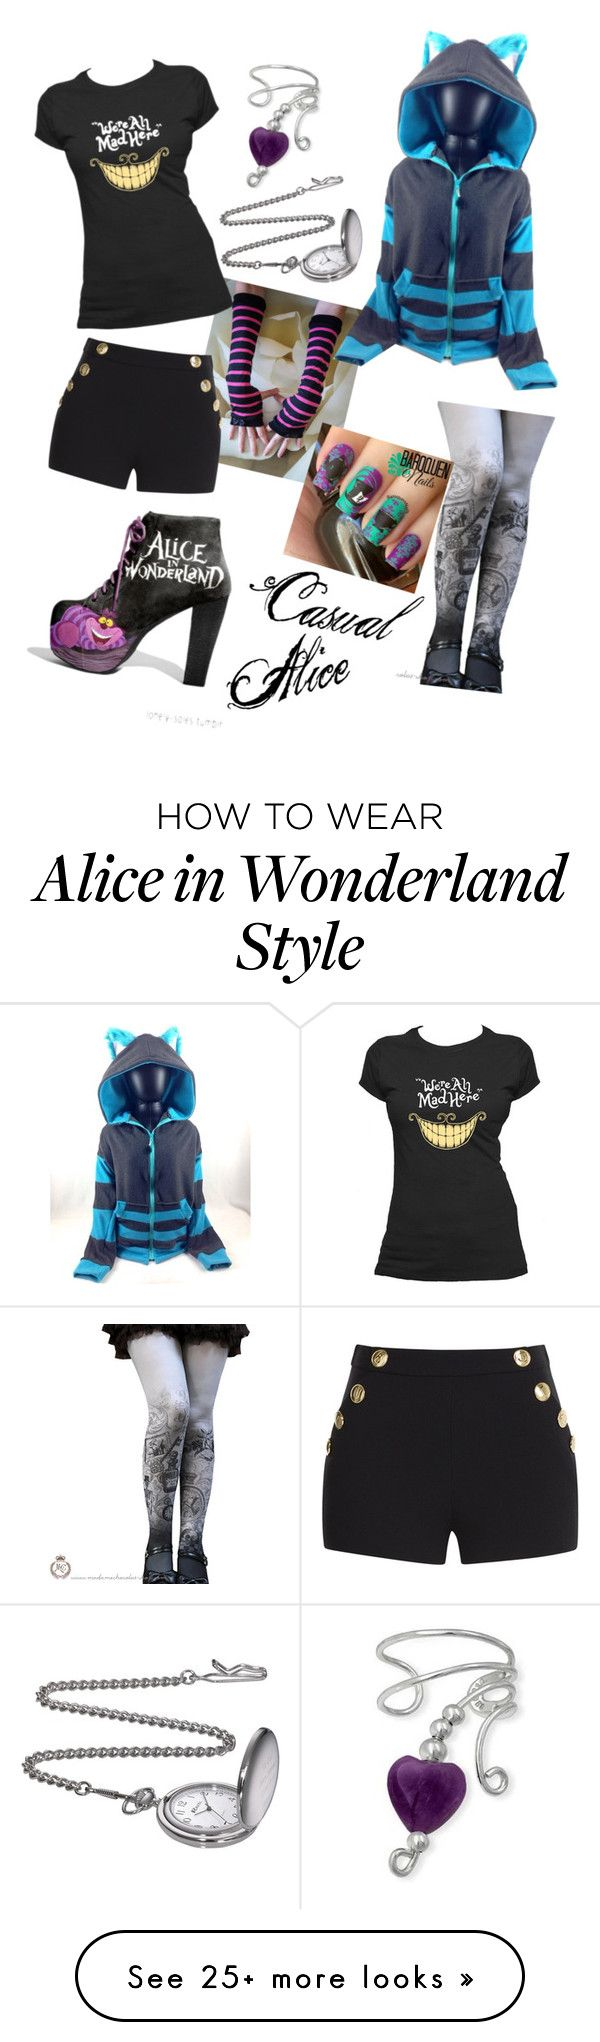 """""""Casual Alice"""" by thistleofmilk on Polyvore featuring Boutique Moschino and Bling Jewelry"""